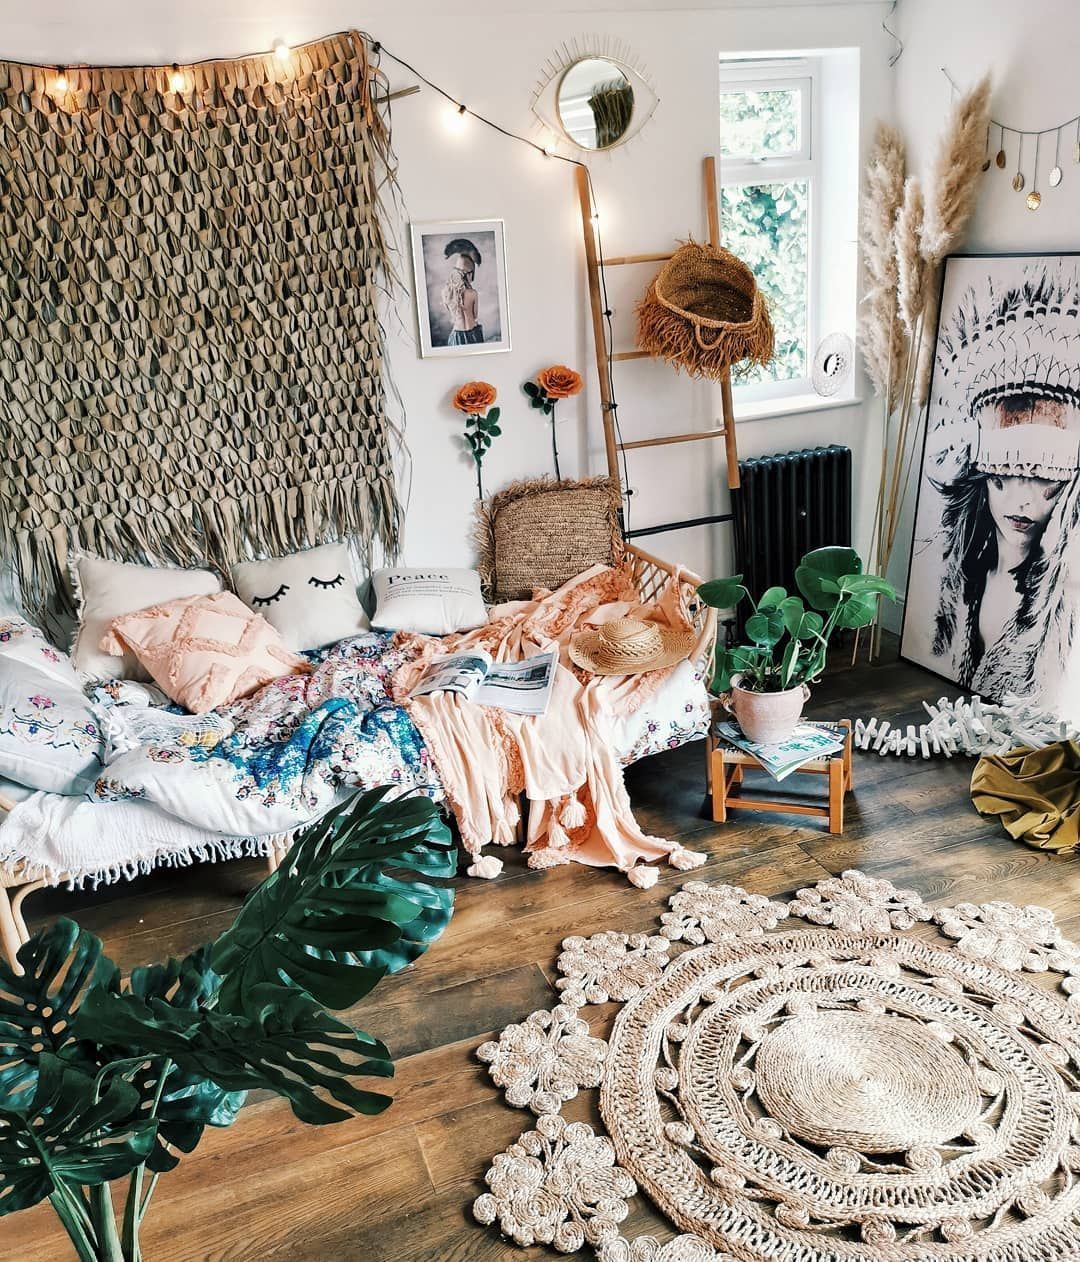 Bohemian Living Room With Day Bed And Rustic Round Rug From Laradoute Bohemianh Be Daybed In Living Room Round Rug Living Room Living Room Rug Placement